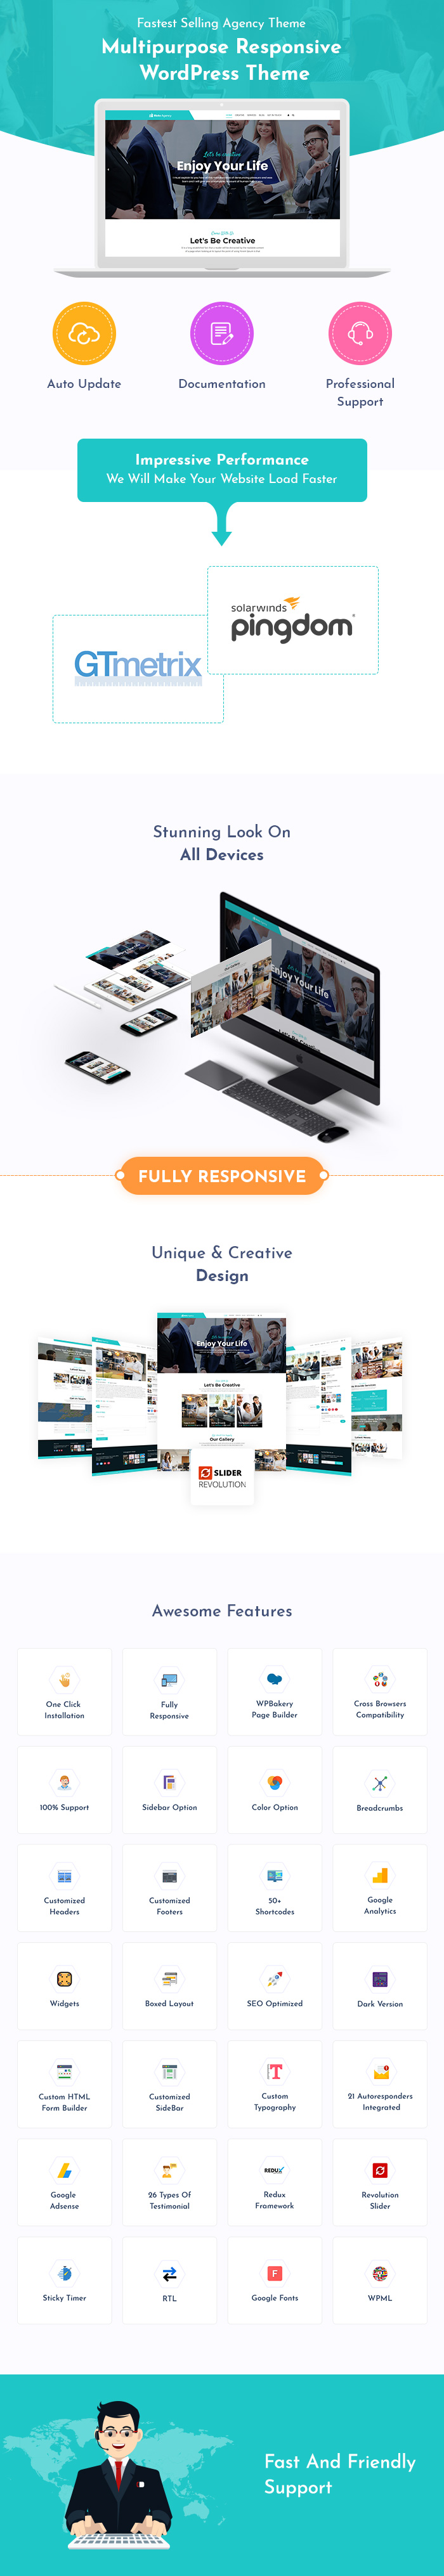 Multi-concept Agency WordPress Themes